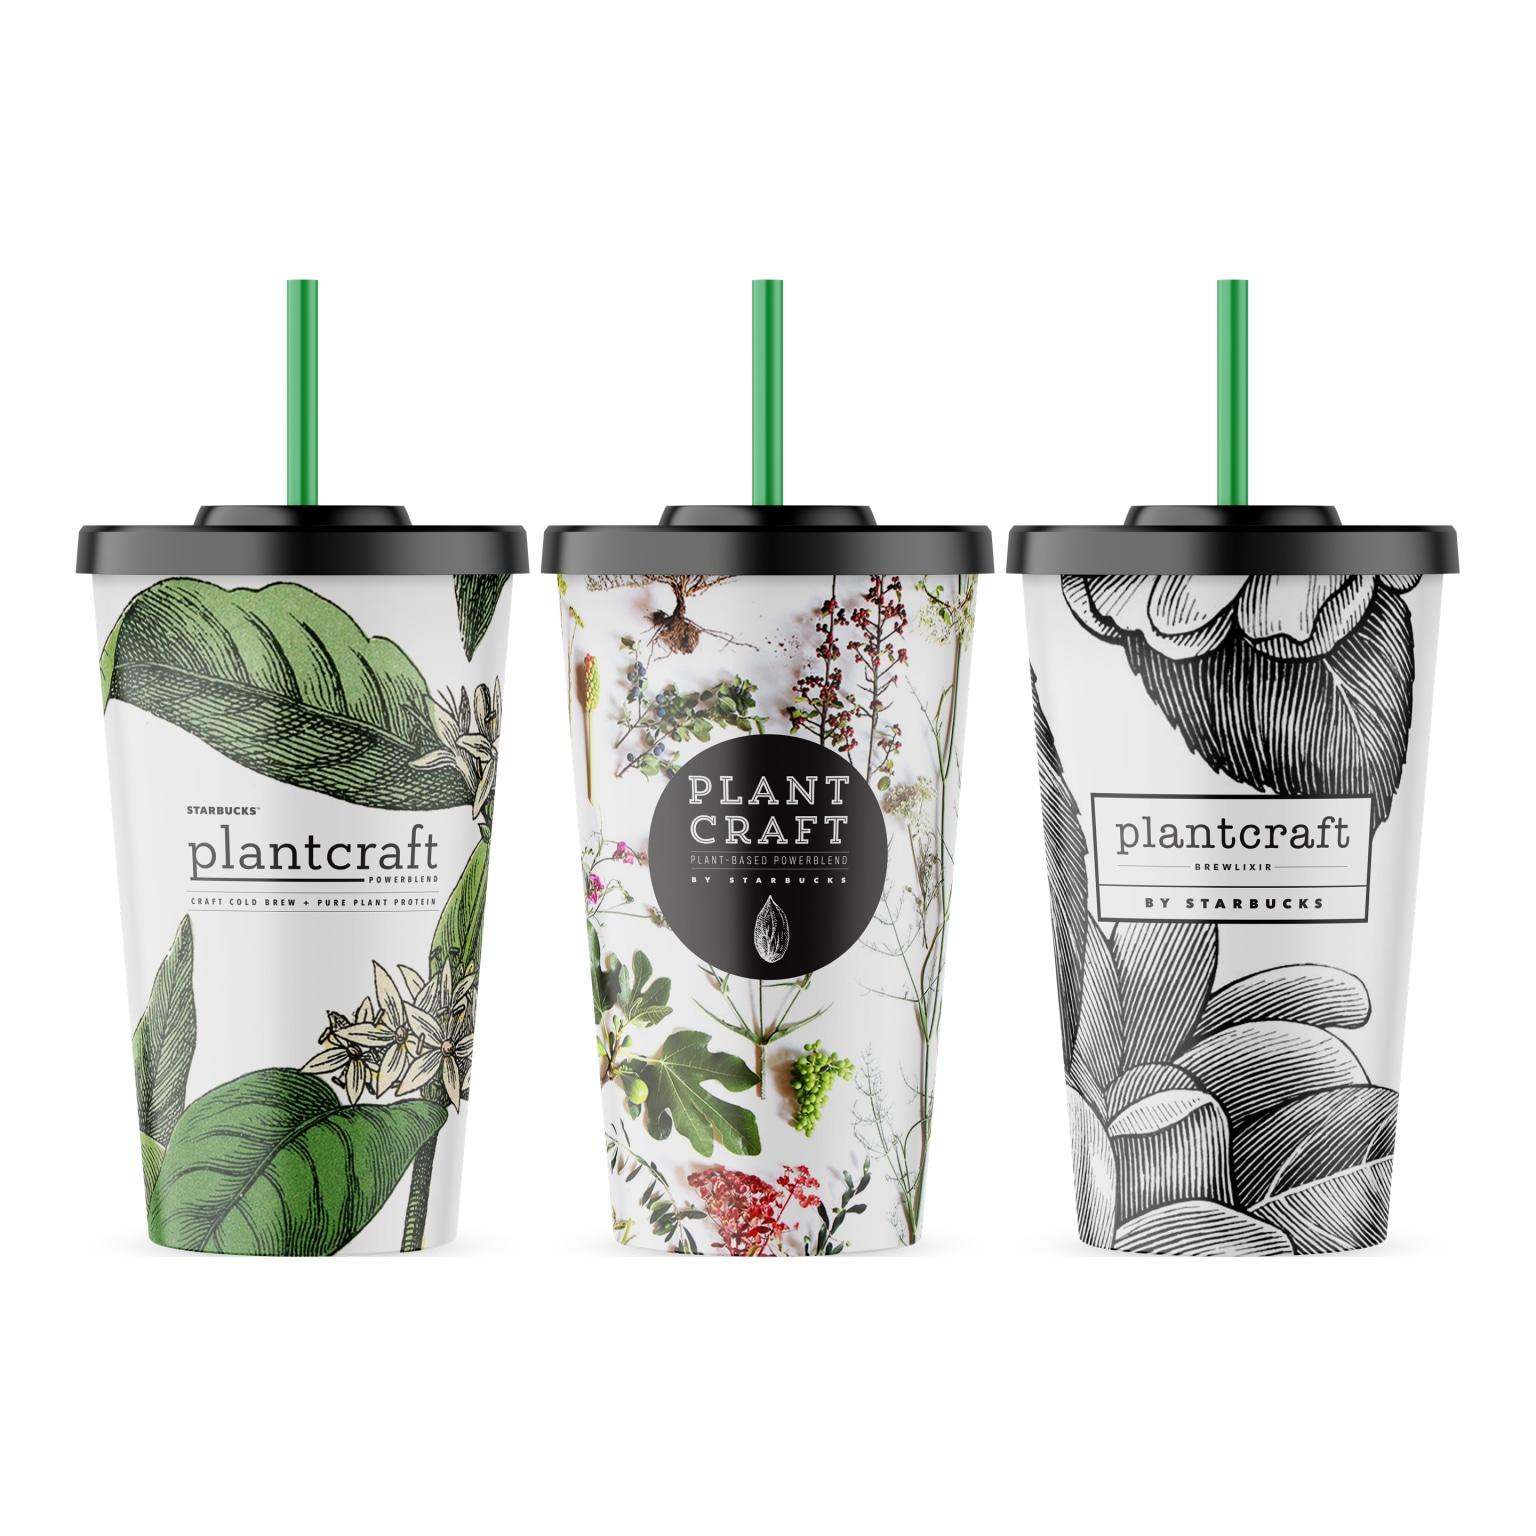 Starbucks Plant Based Concept Deck